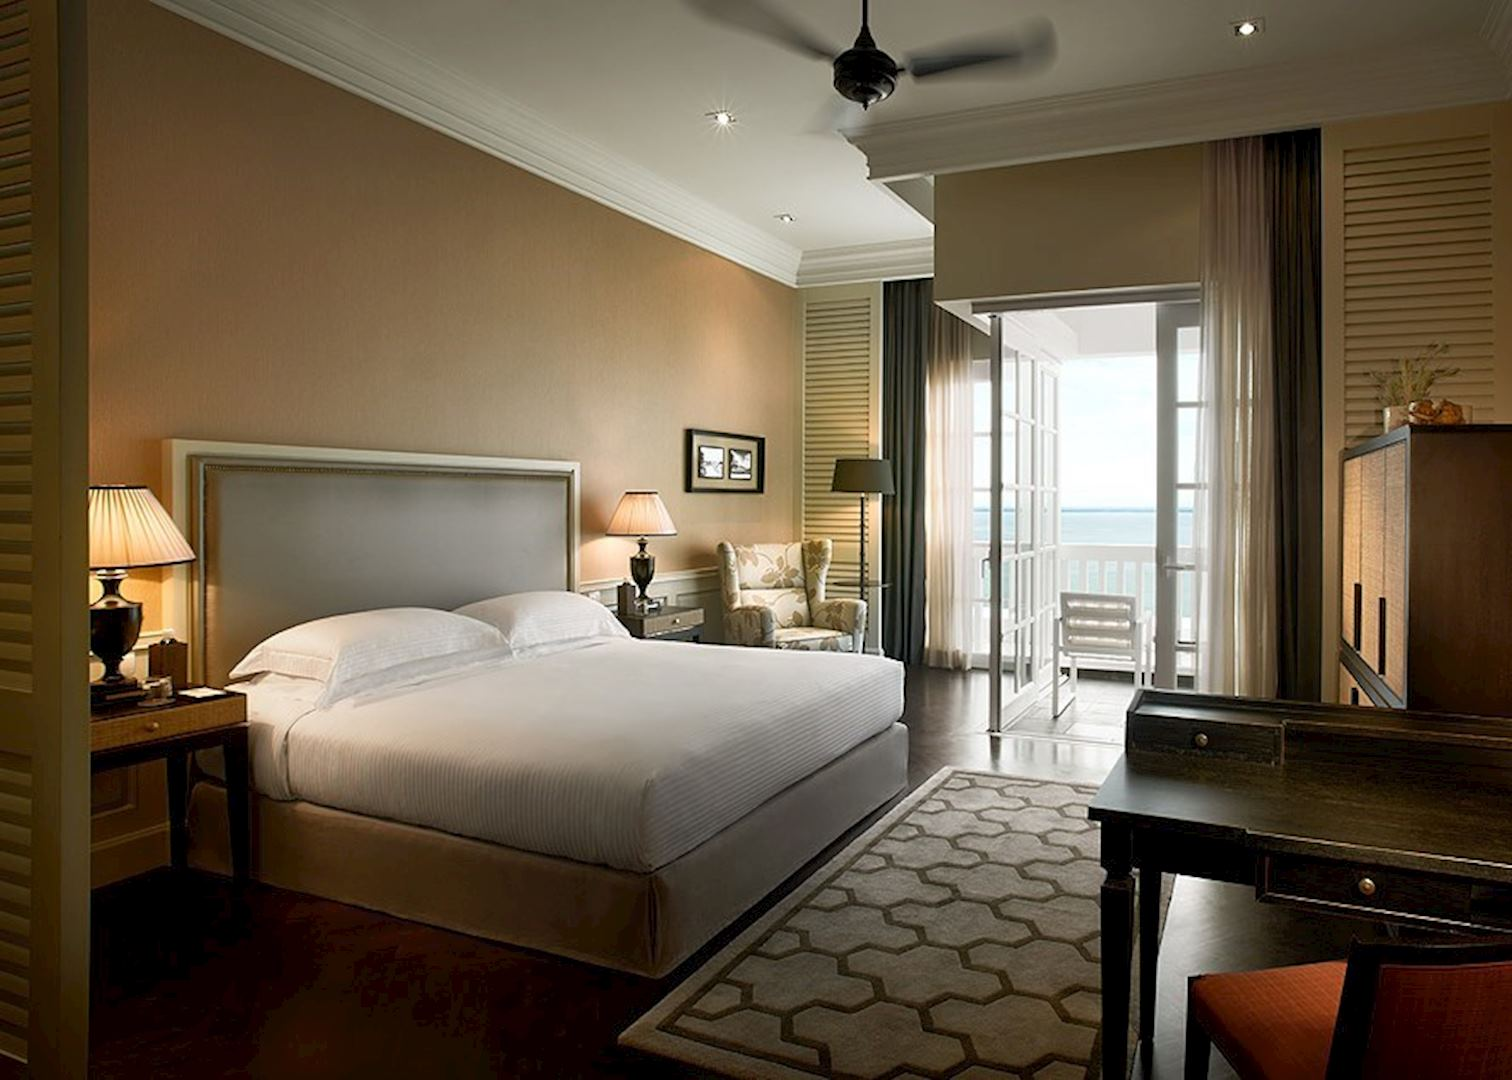 eastern and oriental The eastern & oriental hotel is a tranquil haven in the heart of penang this is a hotel with old colonial charm and the finest traditions of comfort and service right at its door step is an amazing heritage of art and architecture, festivals and food.